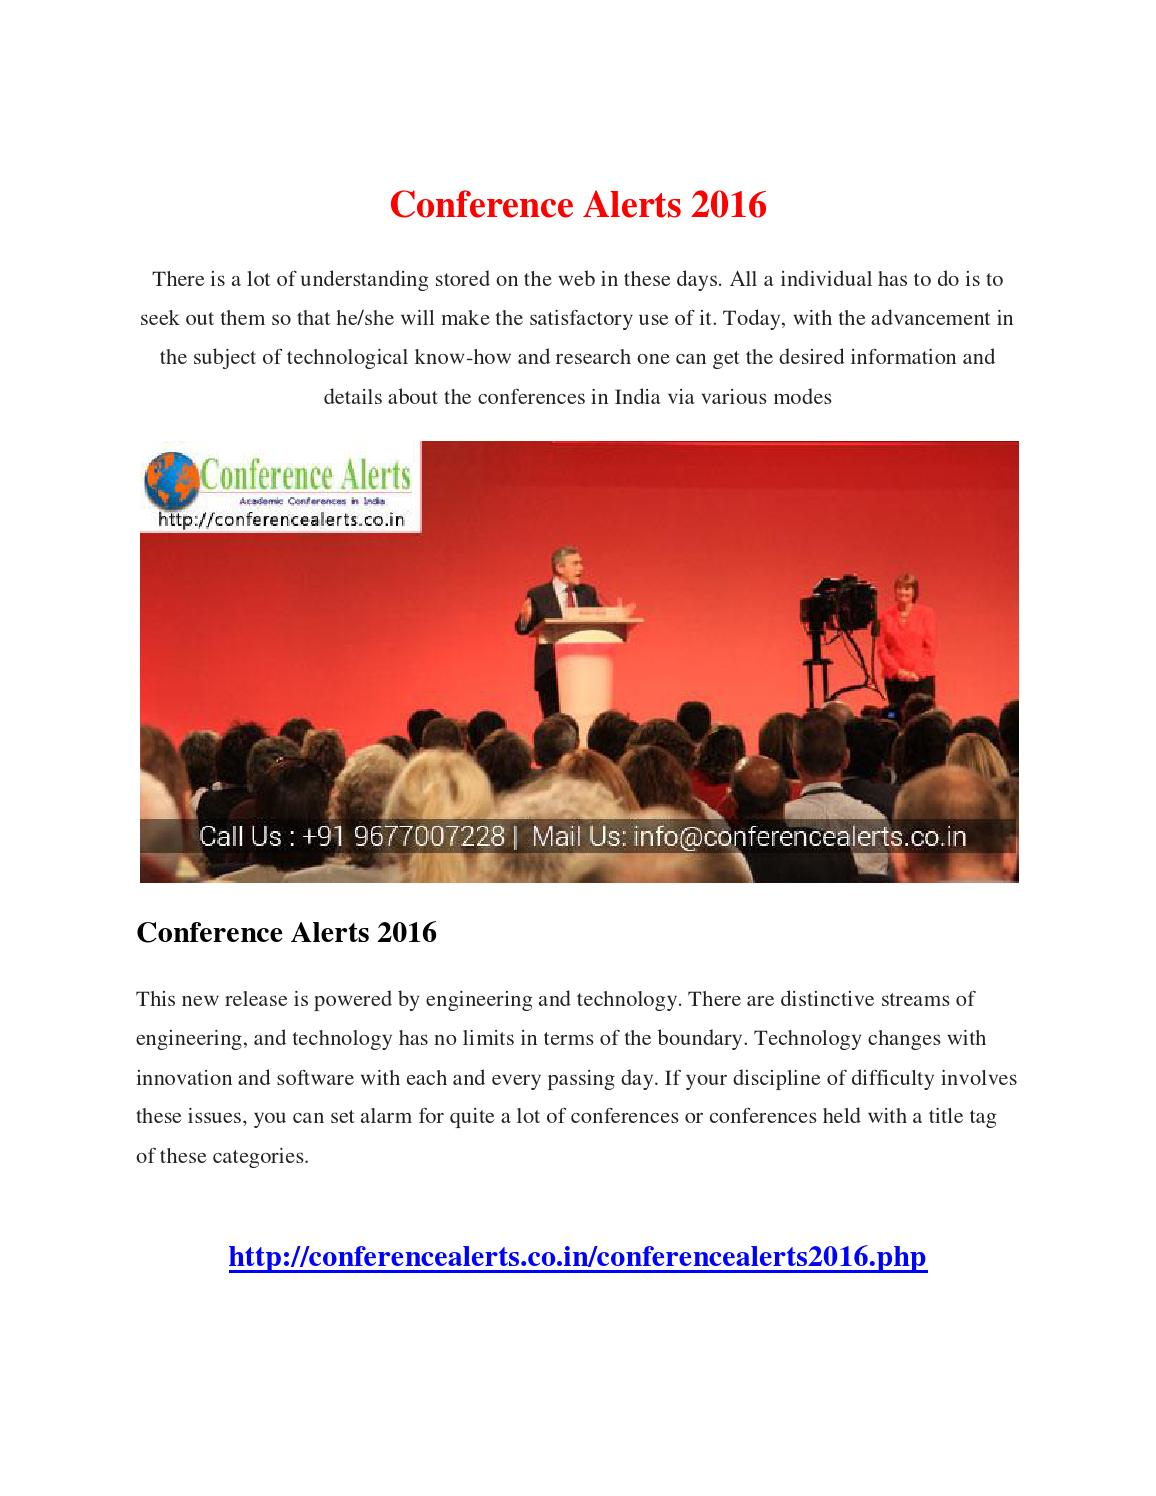 Conference alert 2016 by mani - issuu